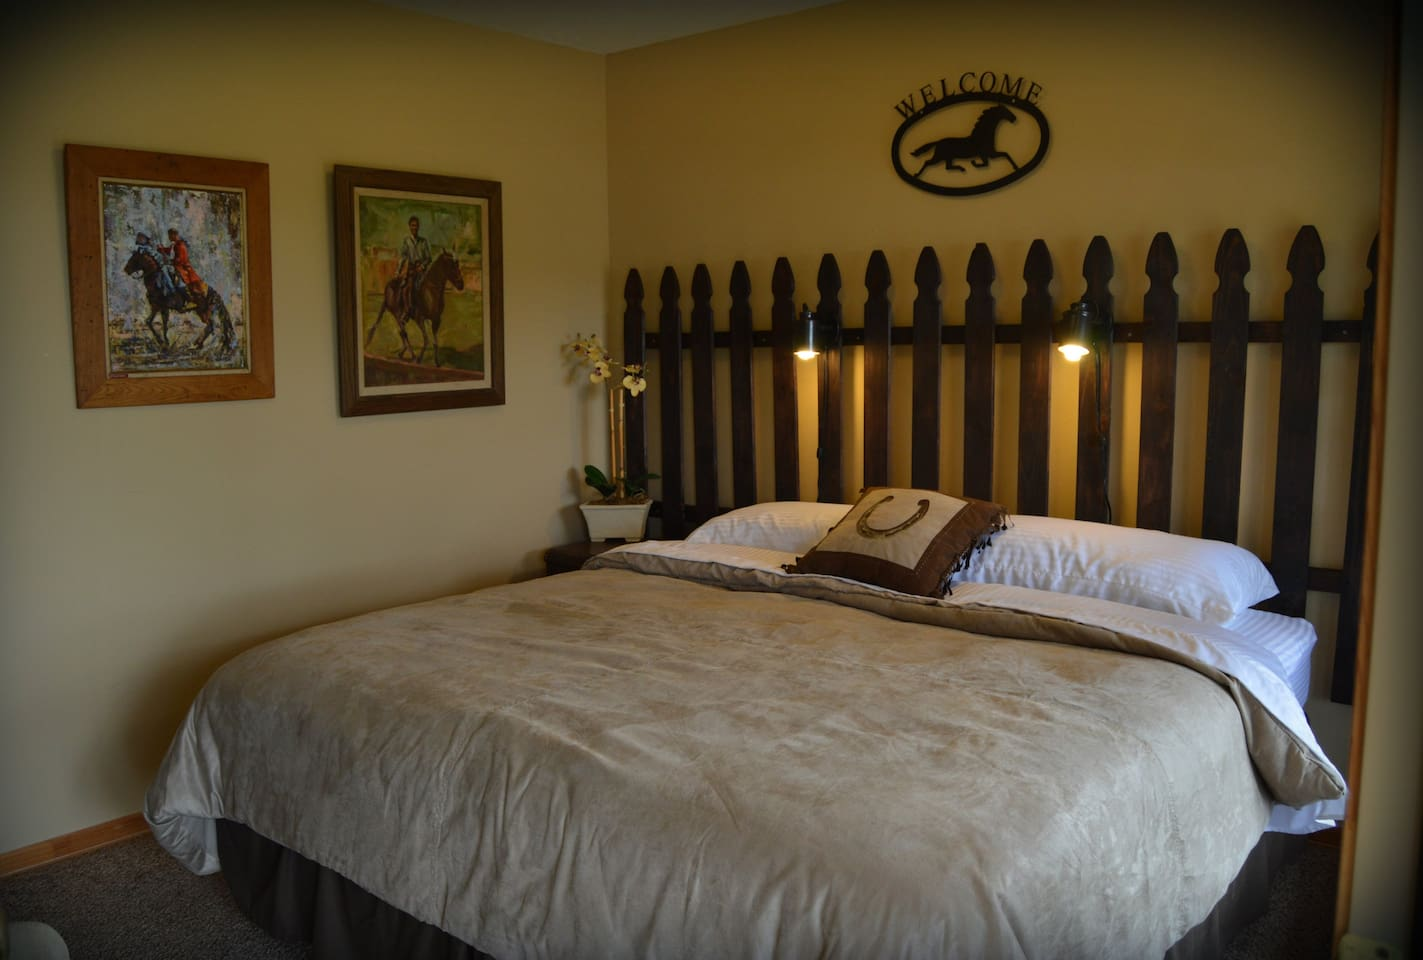 The Equestrian room features a comfortable king sized bed.